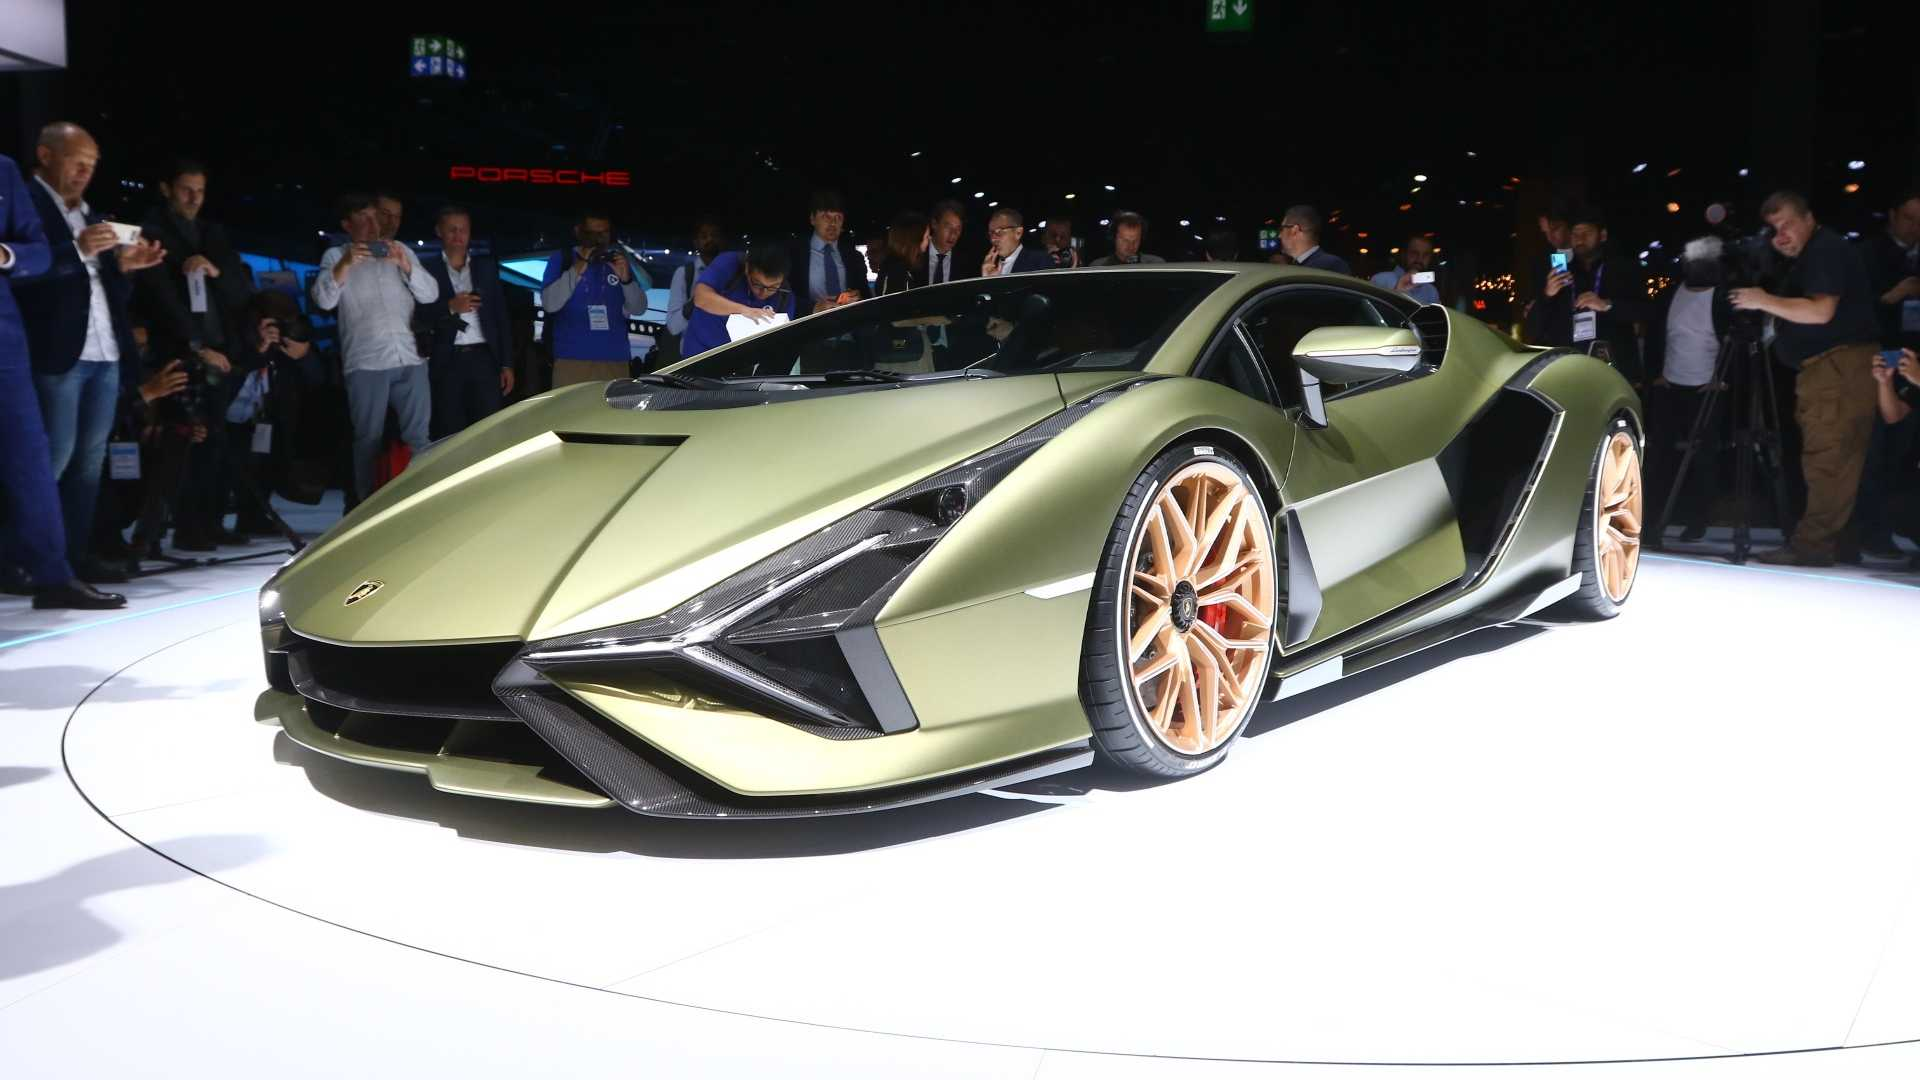 A couple days ago, Bloomberg reported that Volkswagen Group was considering selling the Lamborghini brand. Today, the German car corporation has stepped in with an official contradiction.